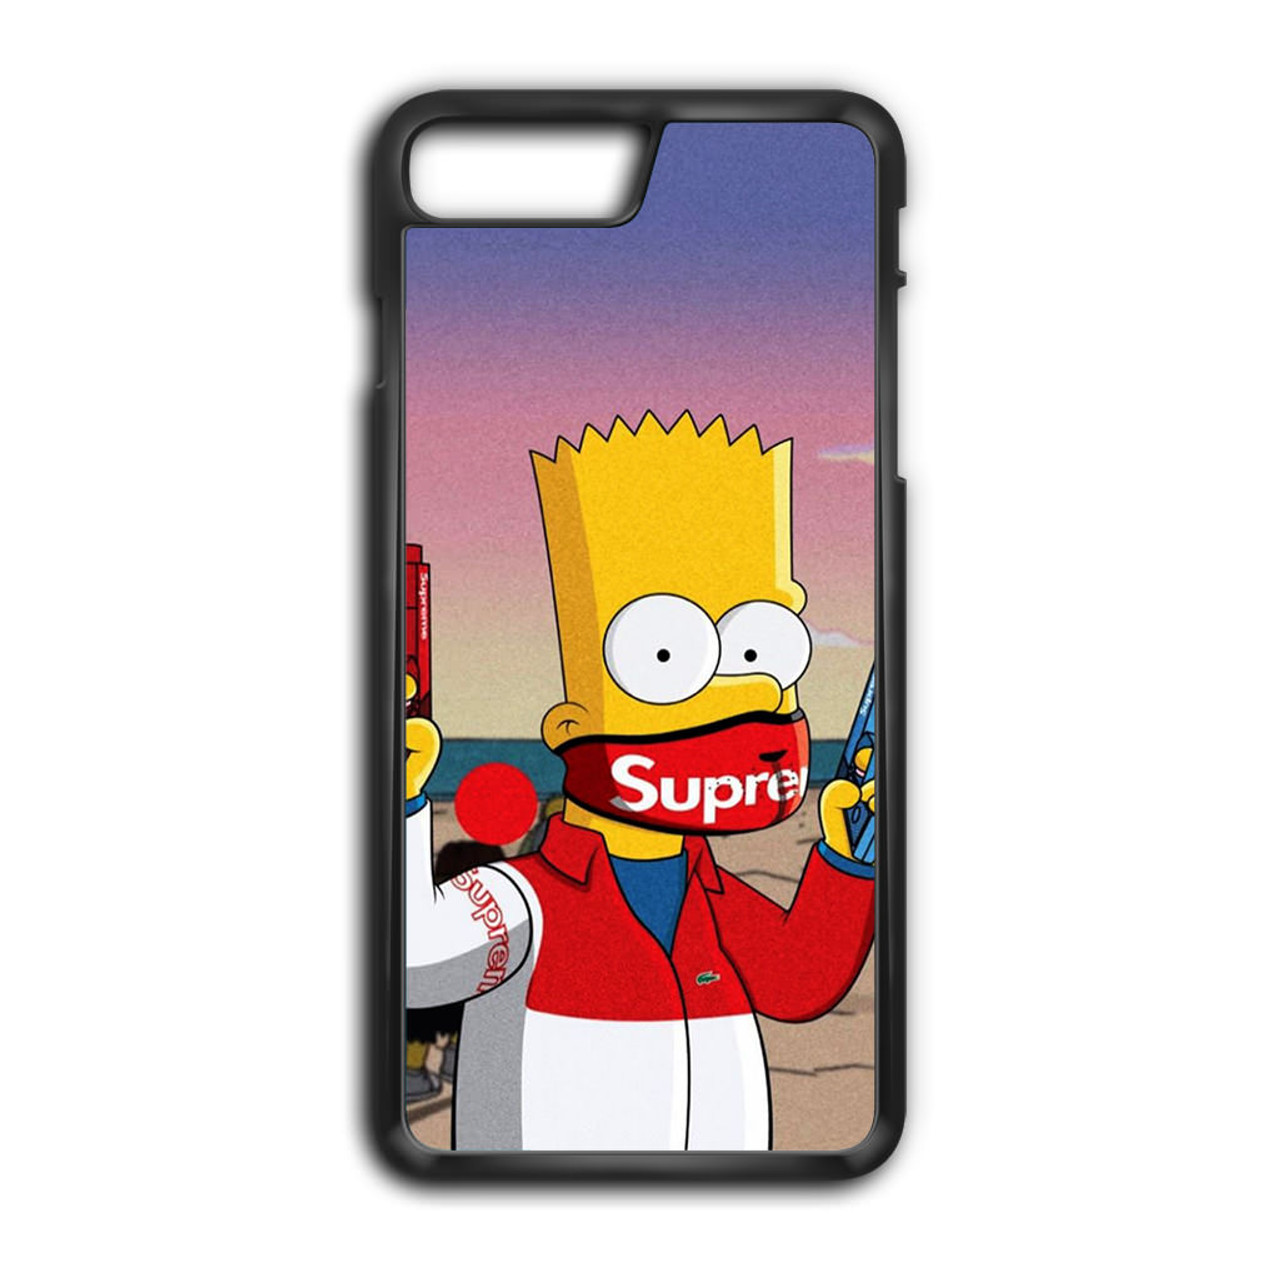 outlet store 7abd7 f7b00 Bart Supreme iPhone 7 Plus Case